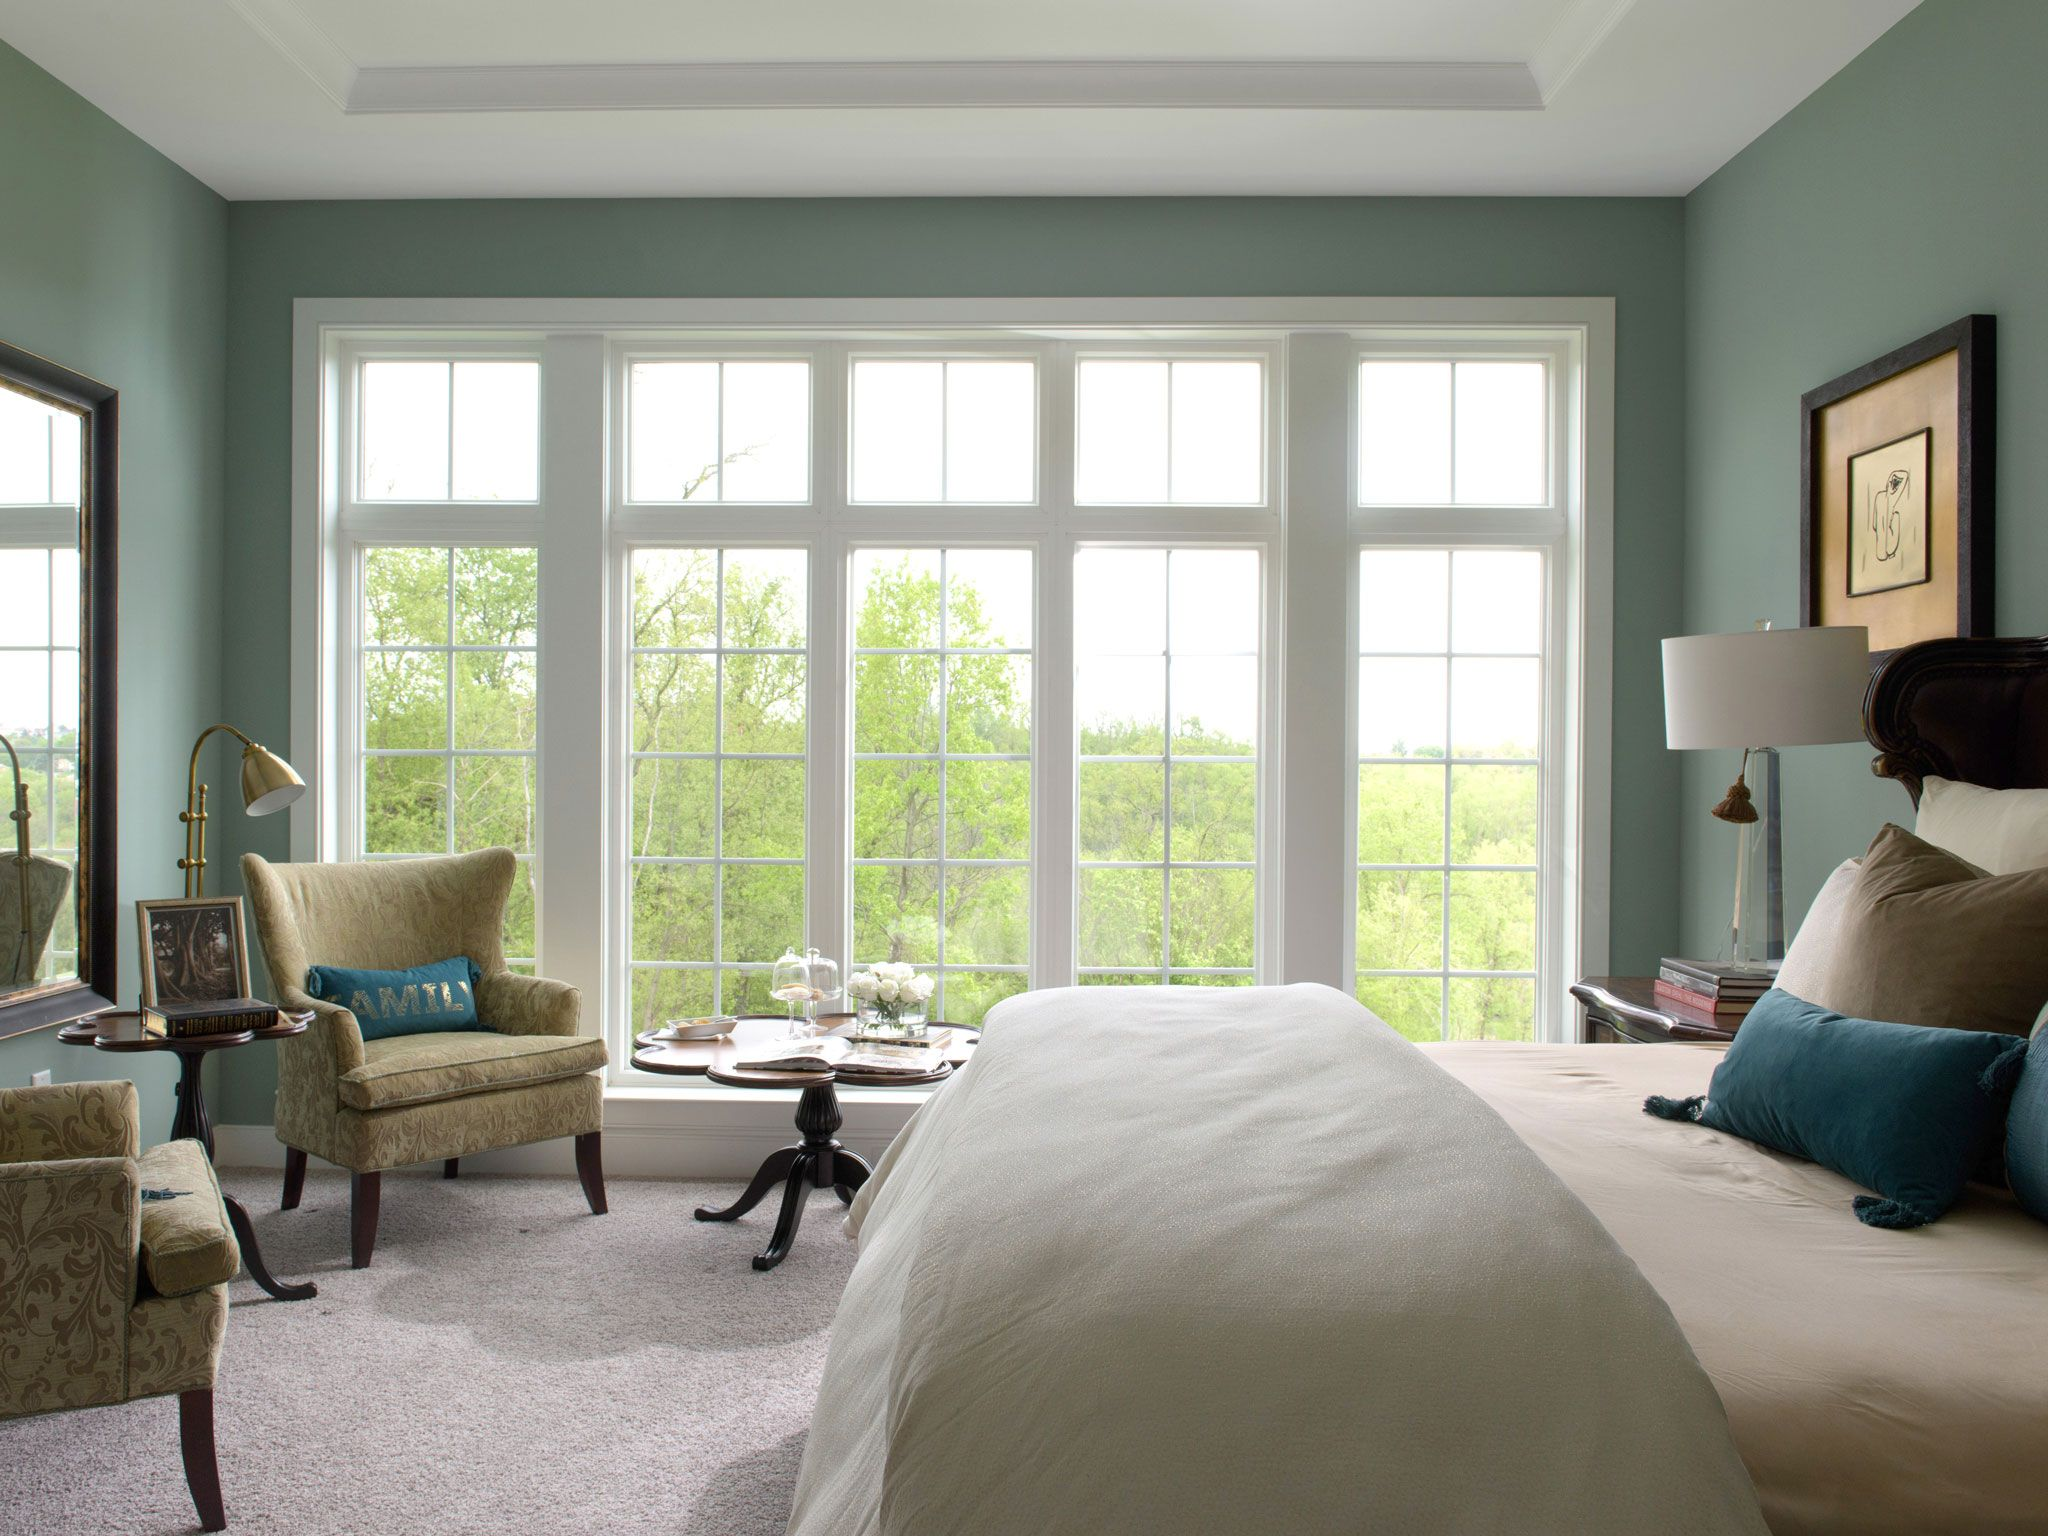 Bedroom featured in the Finch By Charter Homes & Neighborhoods  in Harrisburg, PA